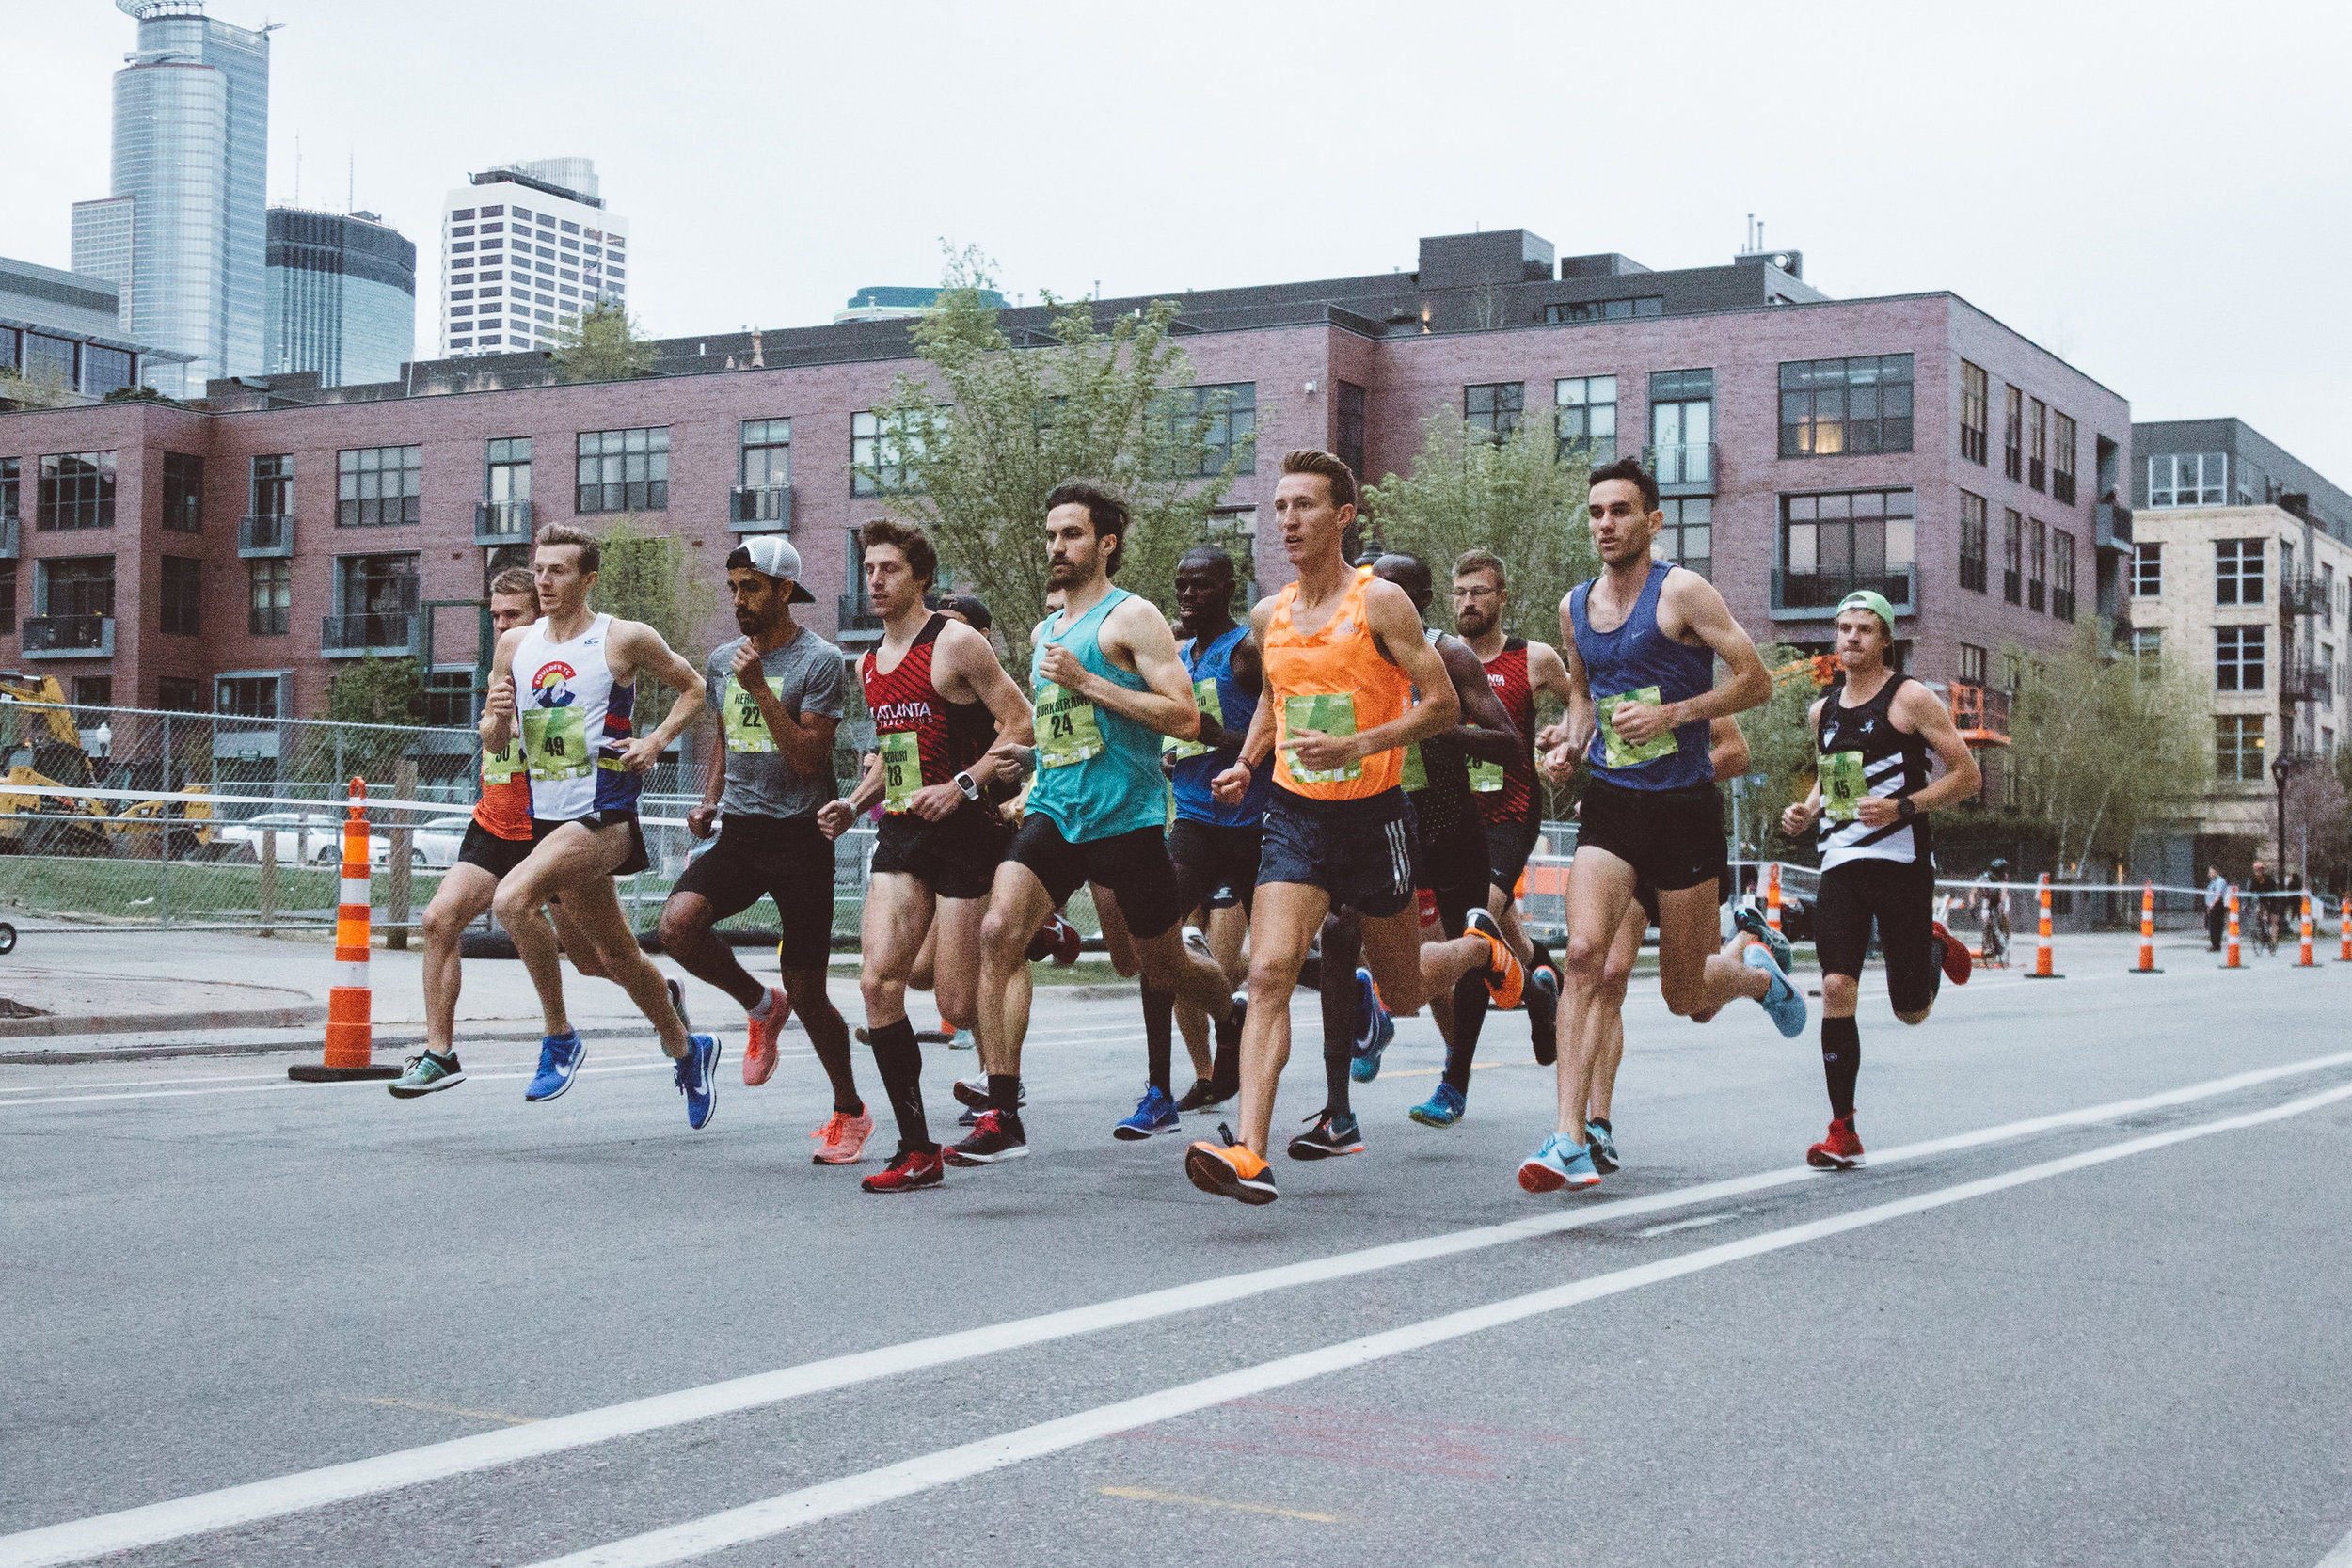 Daniel Herrera, in the cap and t-shirt, competes at the 2018 Medtronic 1 Mile Road Race. | photo: Itaiphoto